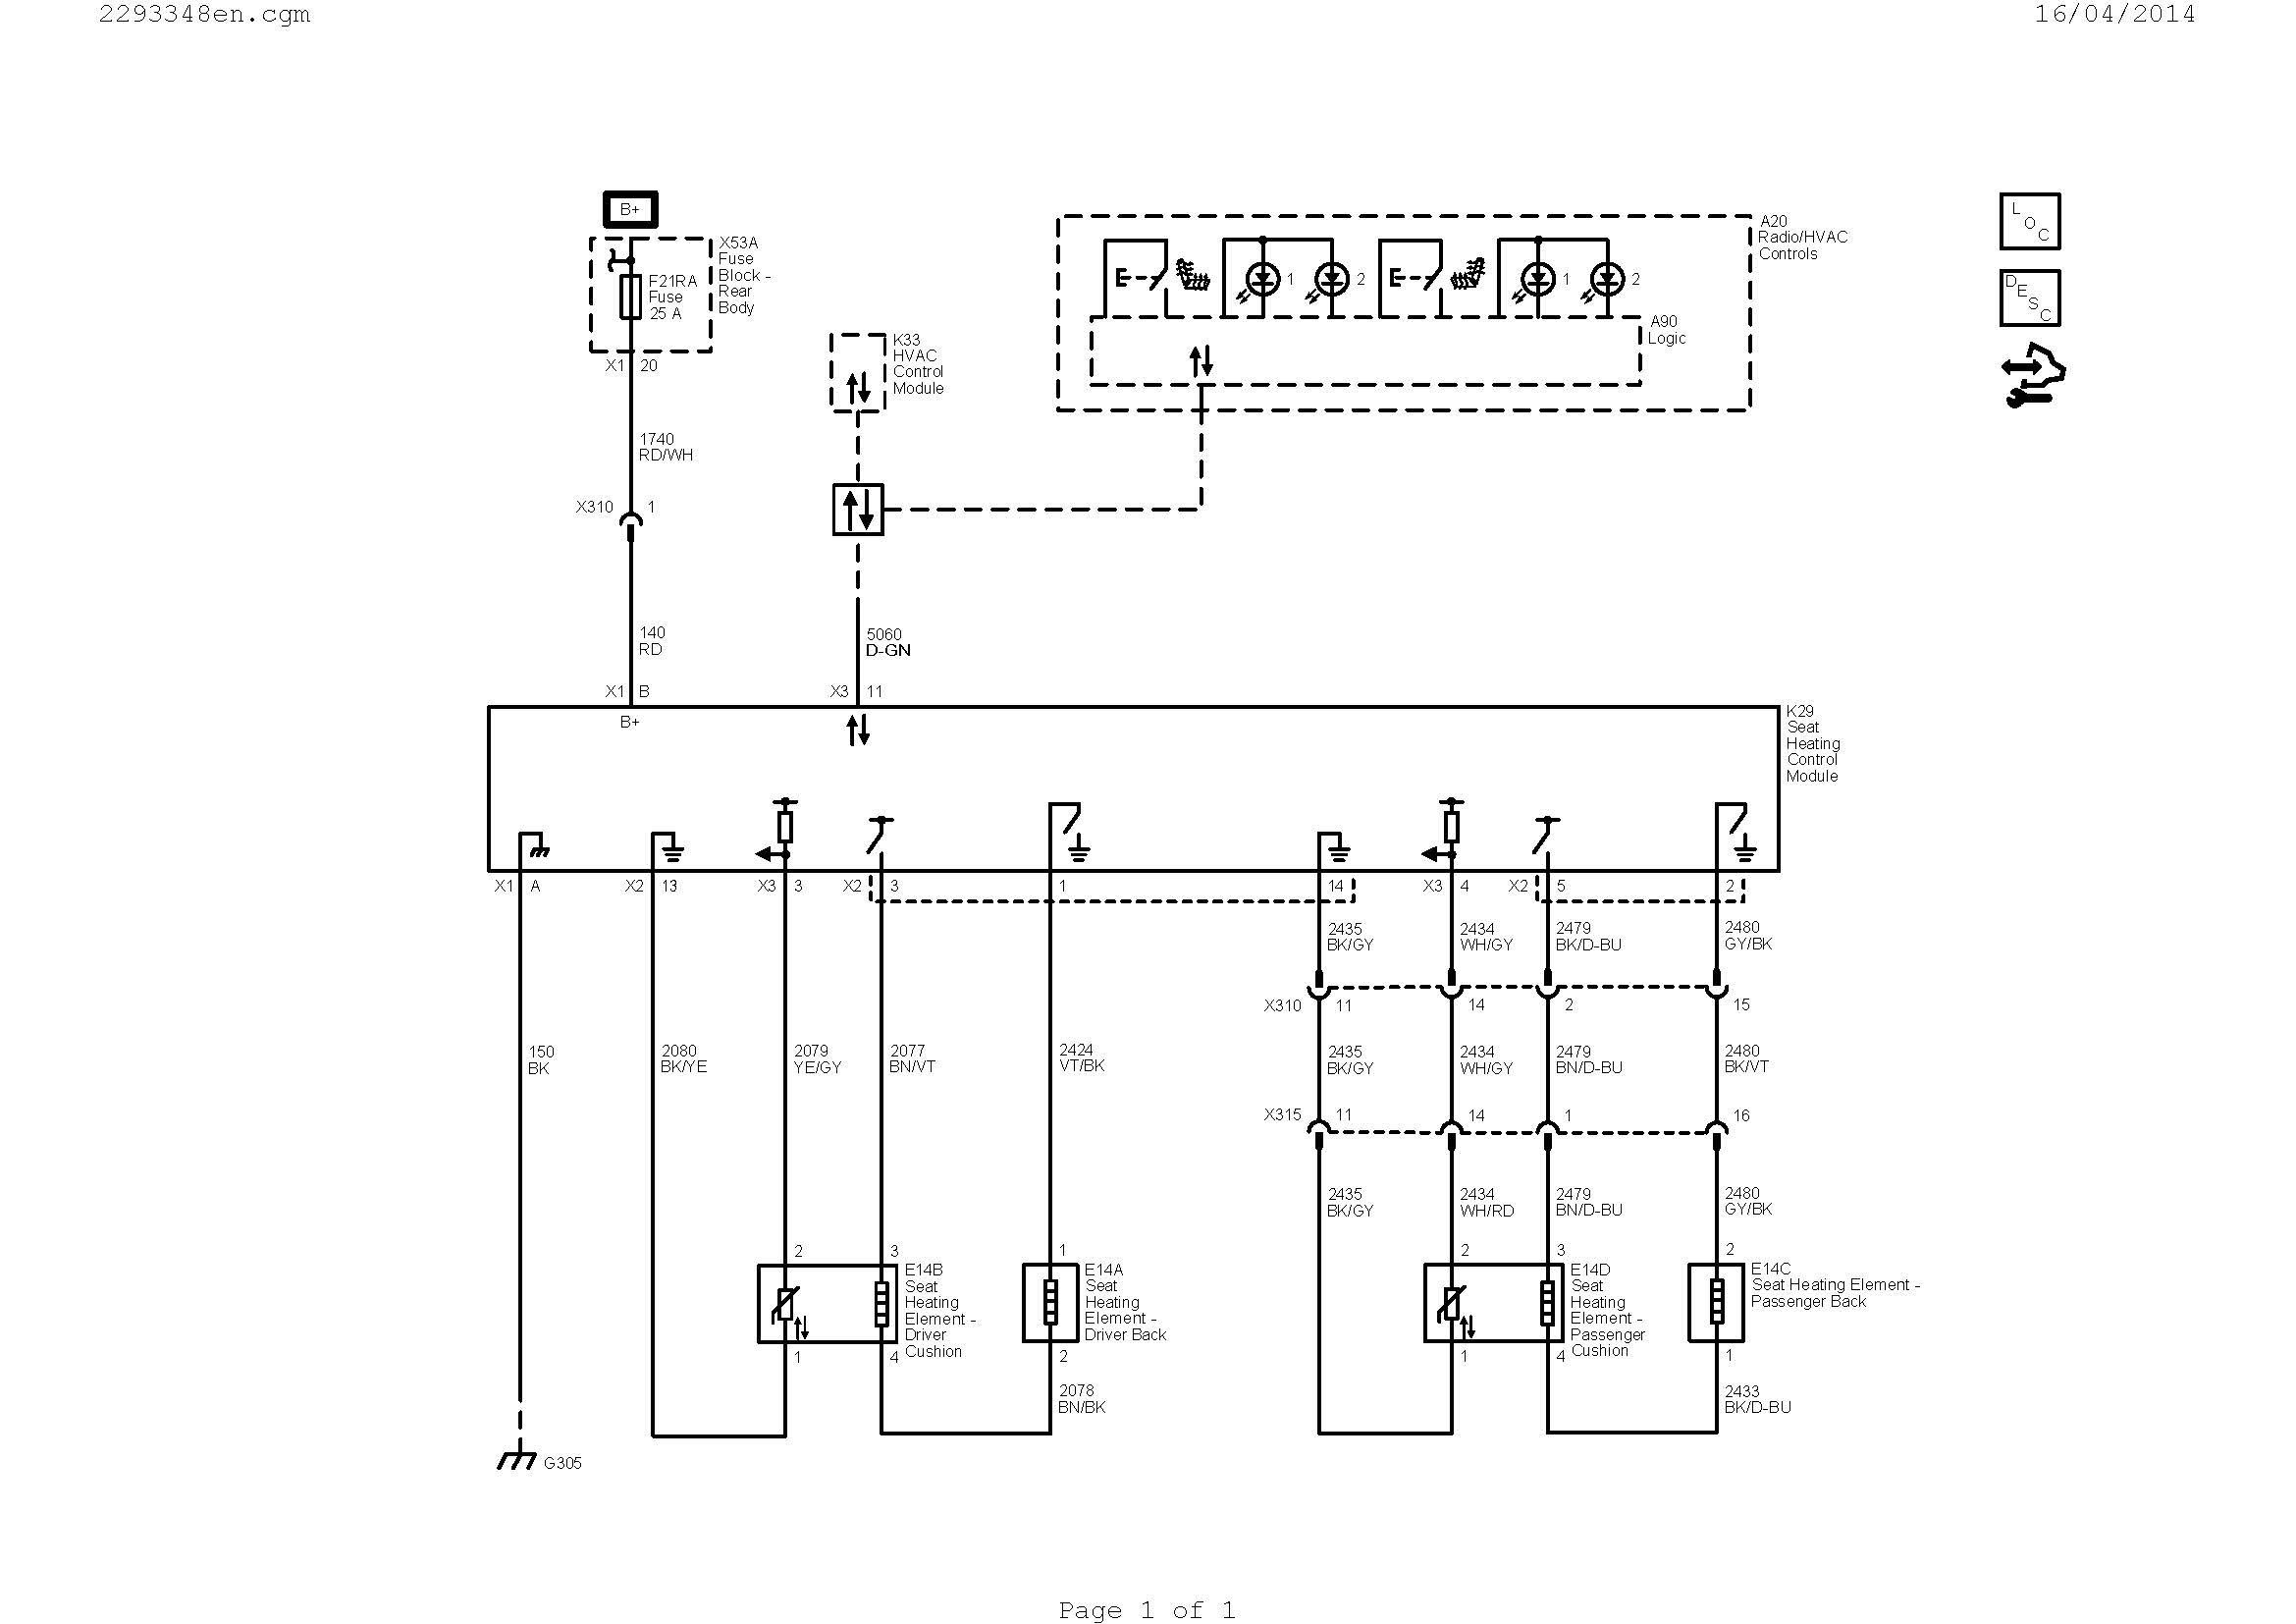 Transformer Wiring Diagrams | Wiring Library - Transformer Wiring Diagram